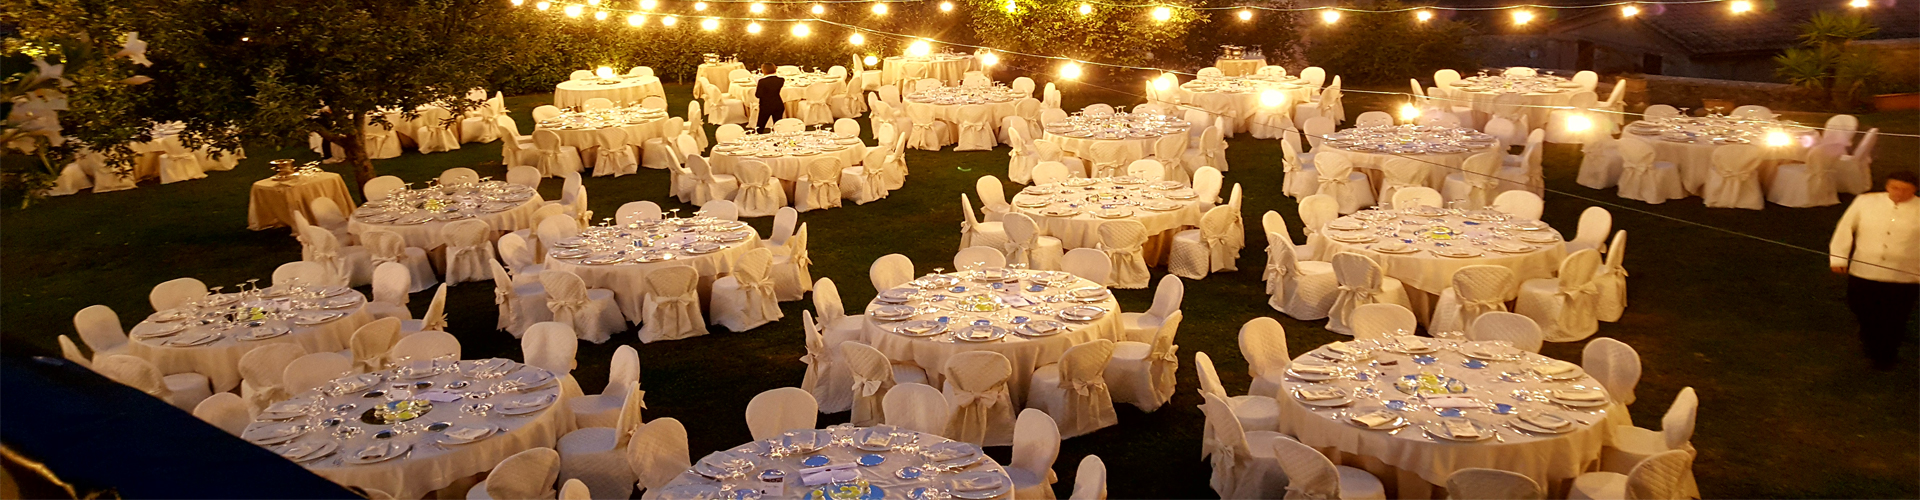 camil catering banqueting